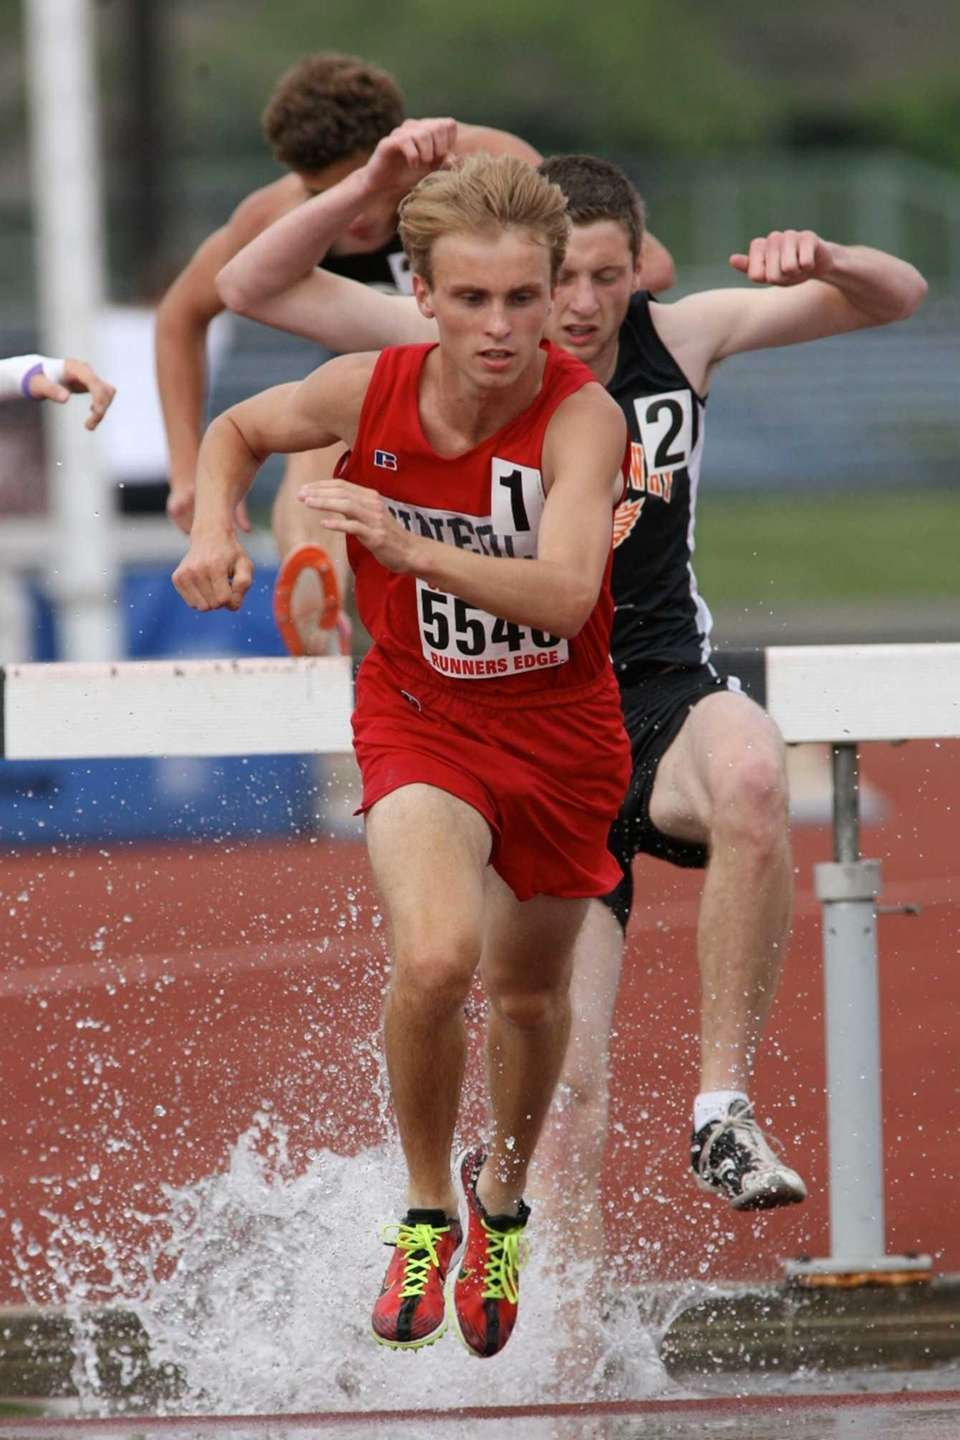 Mineola's Fredric Lang wins the boys' 3000 meter